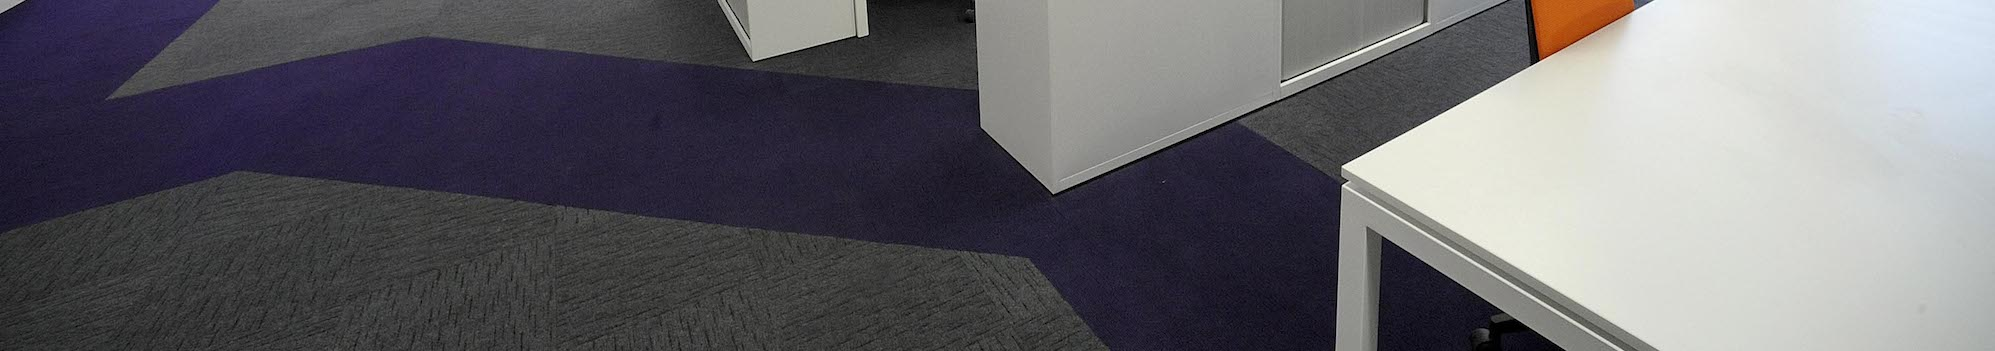 Heckmondwike FB | Office Carpet | Feature Image